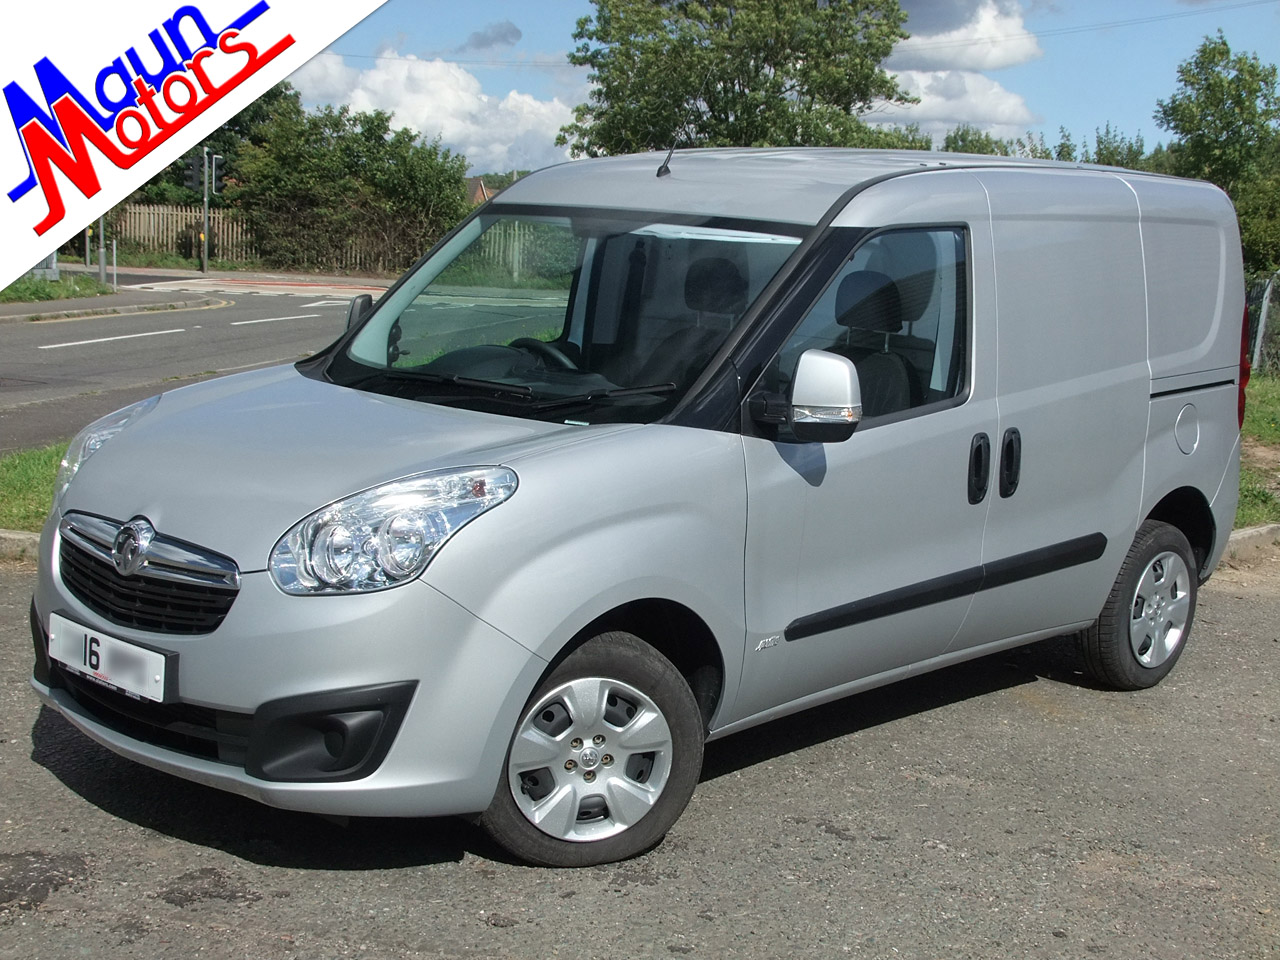 Vauxhall Combo used vans for sale